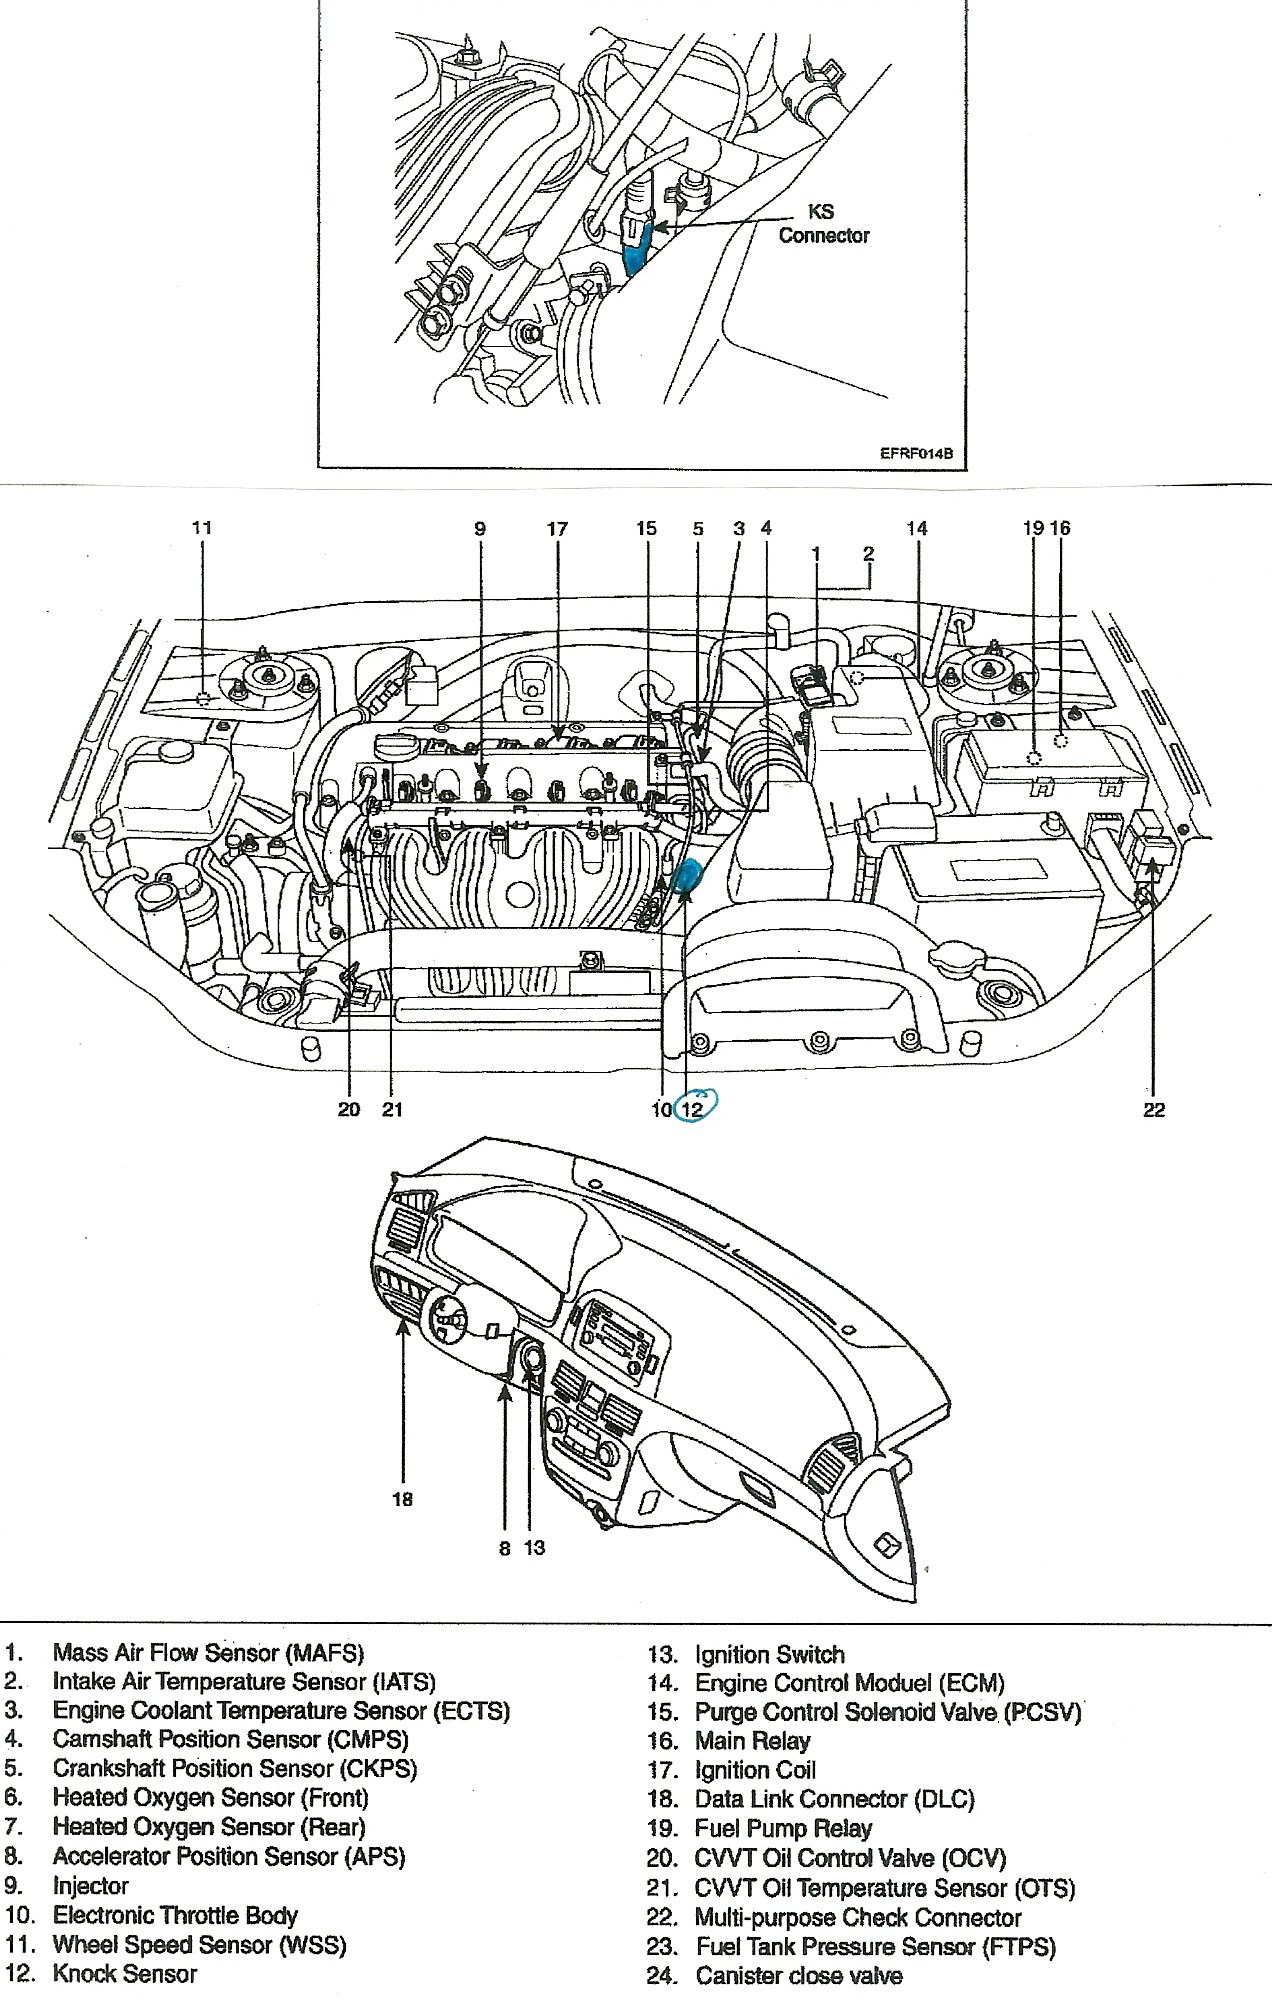 2013 03 29_203246_ks_sensor unable to locate knox sensor on 06 sonata 2 4 Chevy Ignition Switch Wiring Diagram at crackthecode.co